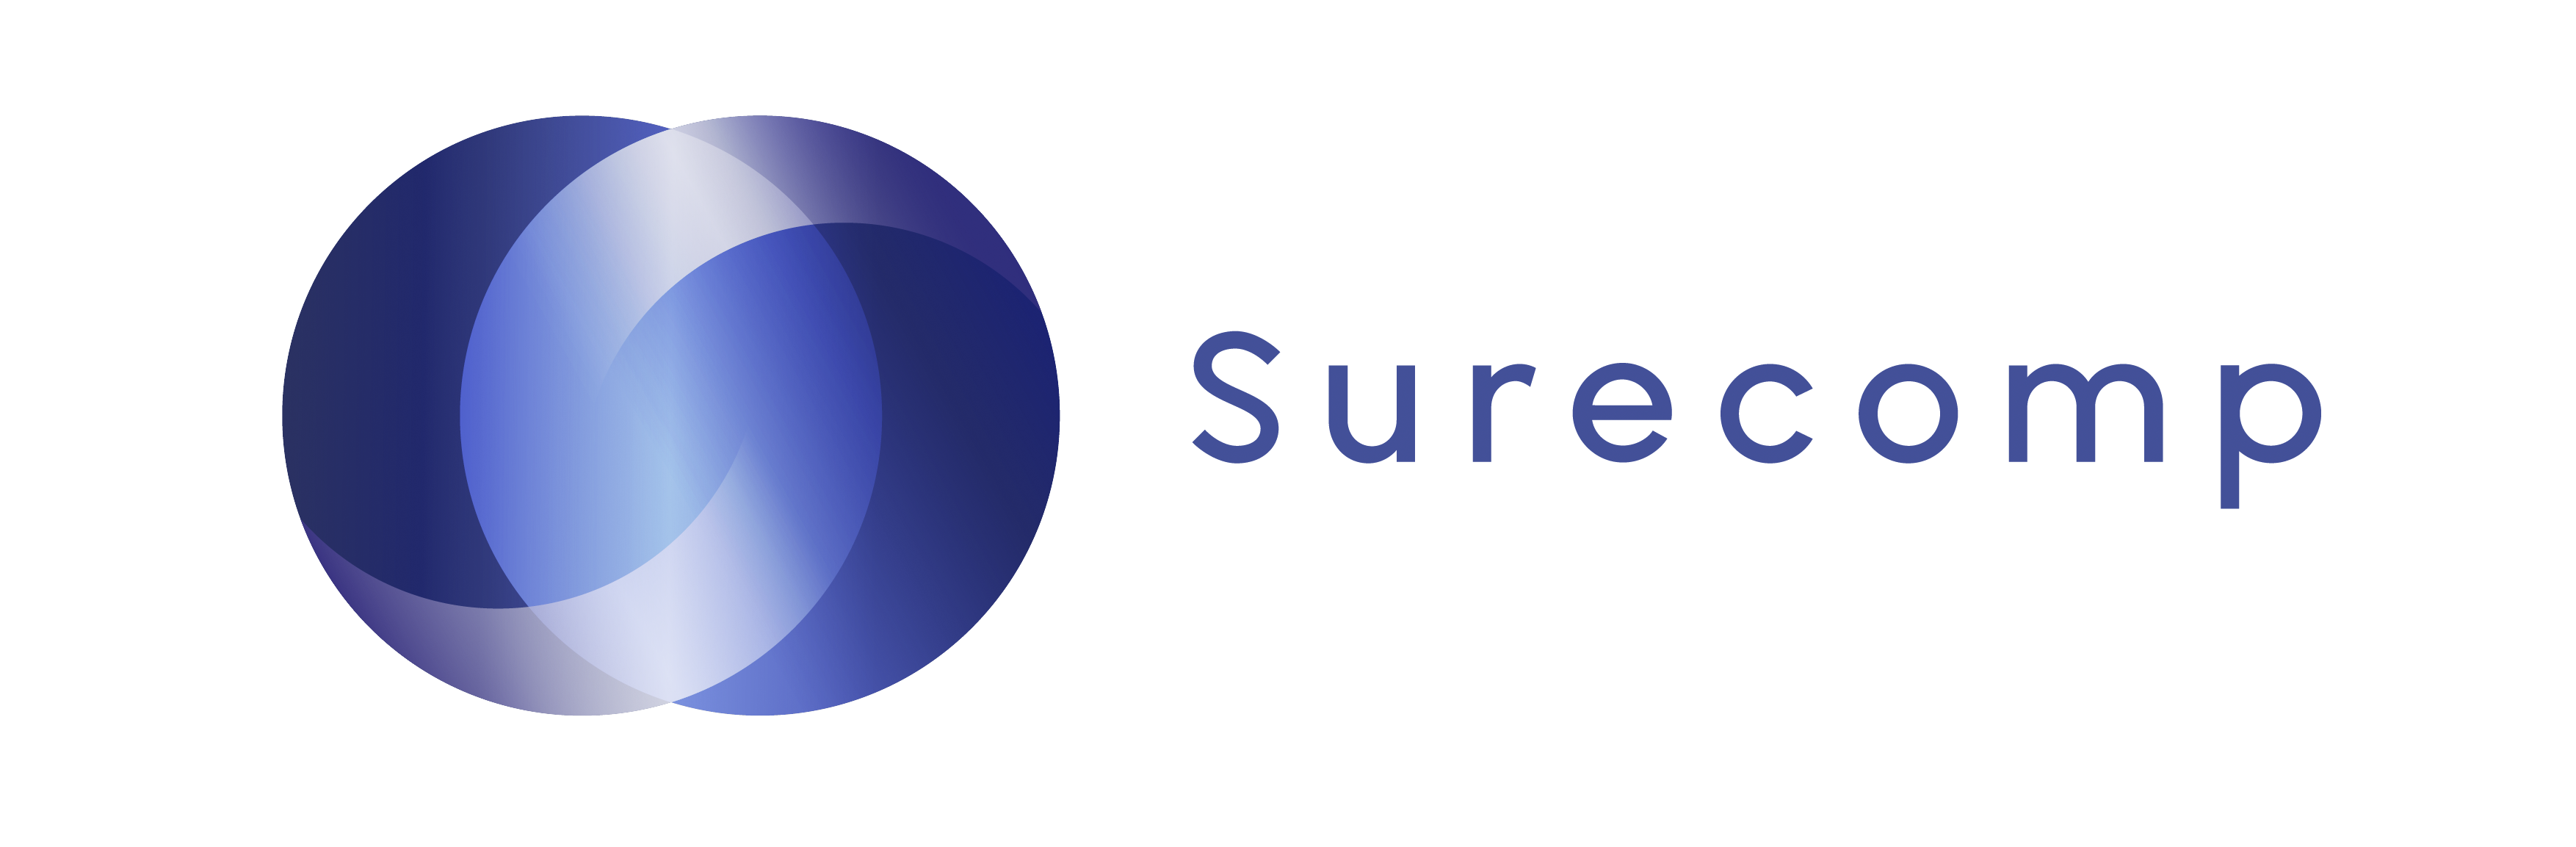 Surecomp® Marks the Launch of Its Fintech Marketplace With New Brand Identity